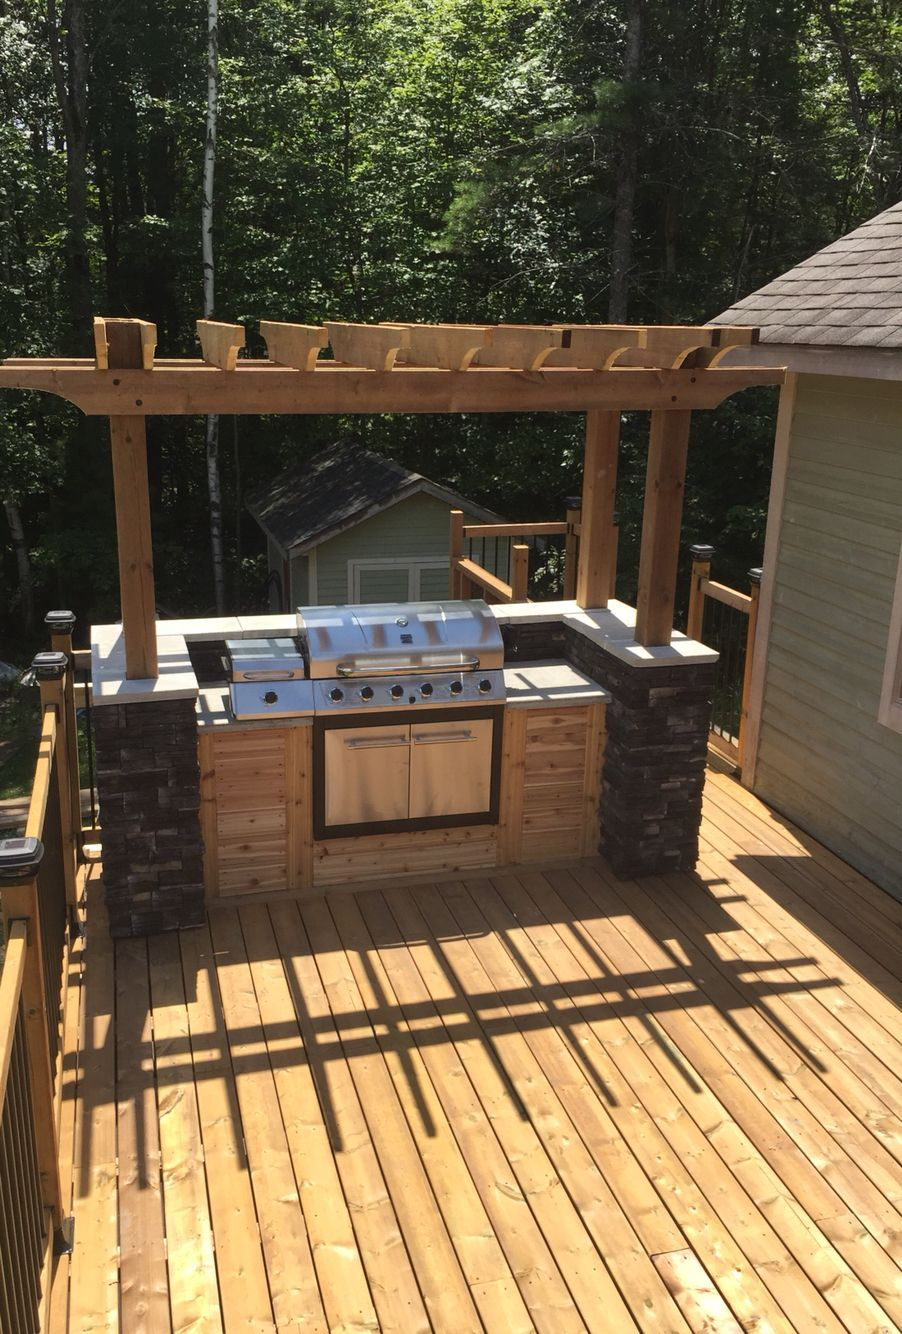 10 Awesome Concepts Of How To Build Backyard Bbq Area Design Ideas Outdoor Grill Station Outdoor Kitchen Design Layout Outdoor Kitchen Design